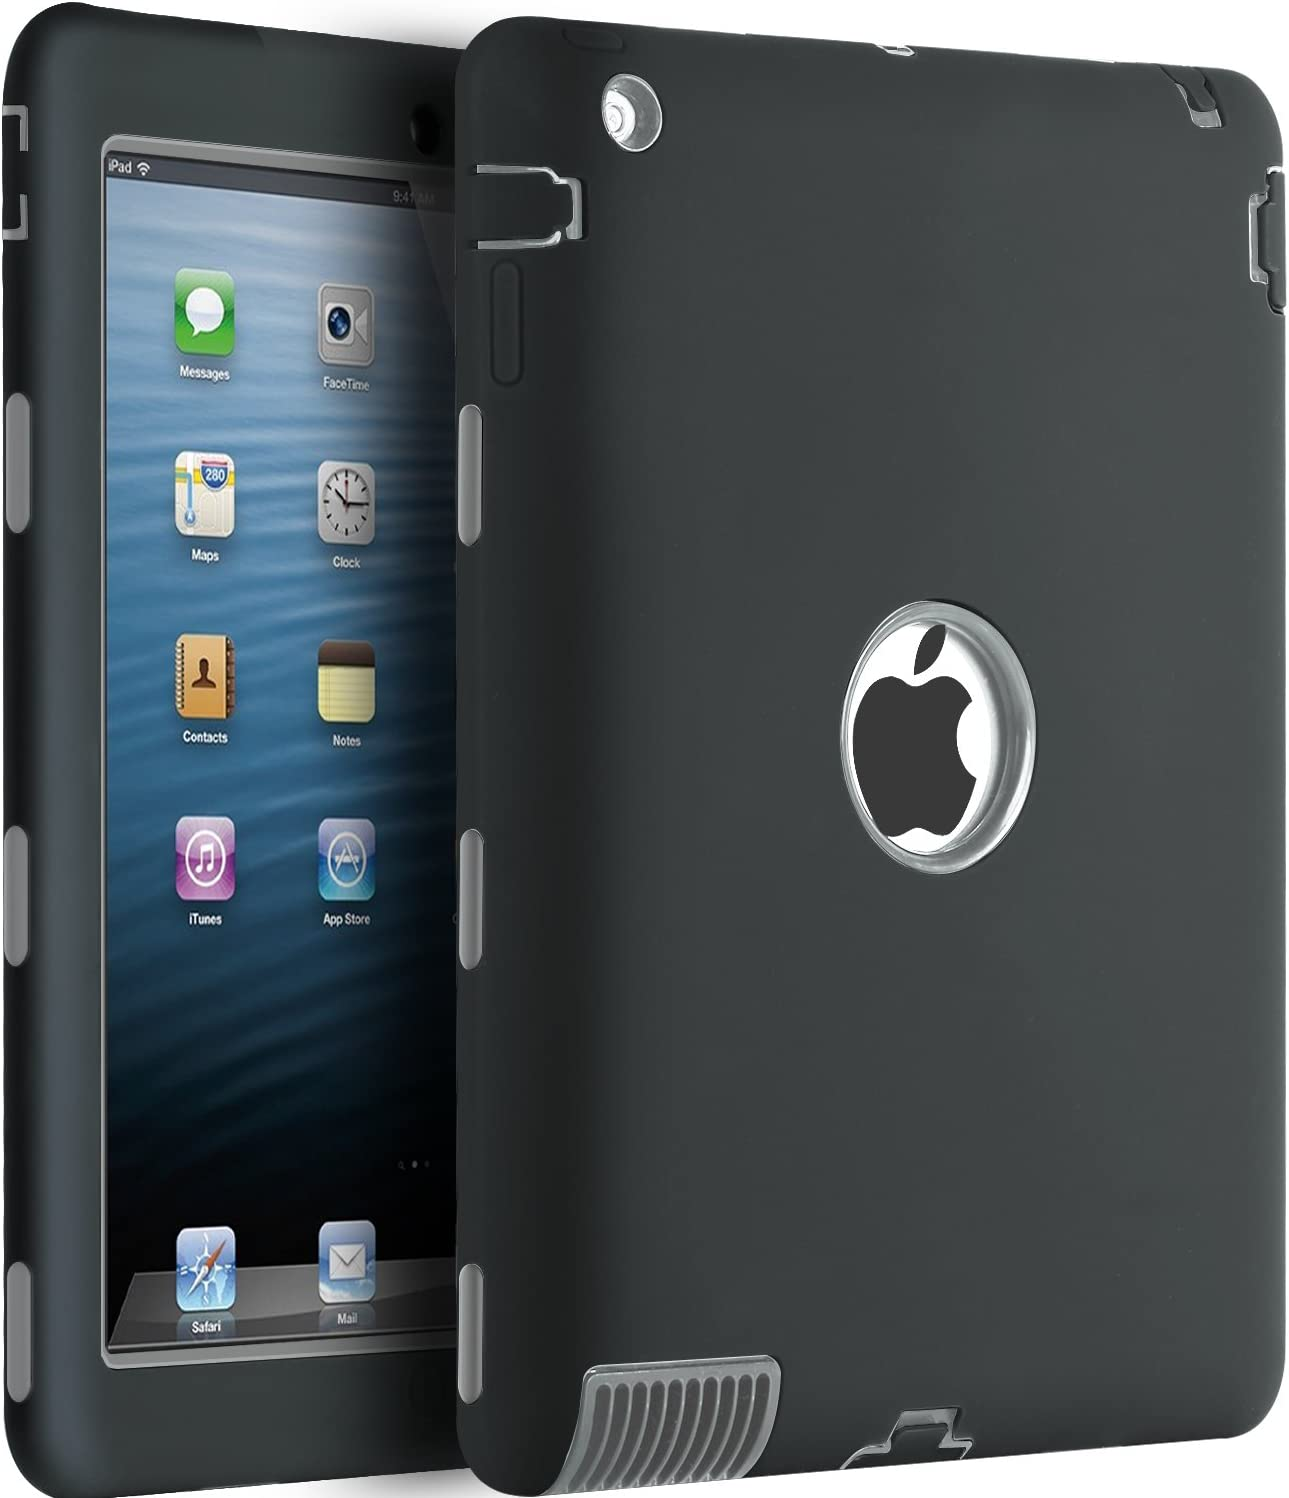 iPad 2 Case,iPad 3 Case,iPad 4 Case,BENTOBEN Heavy Duty Rugged Shock-Absorption/High Impact Resistant Hybrid Three Layer Full Body Protective Case Cover for iPad 2/3/4 Retina (Black/Gray)